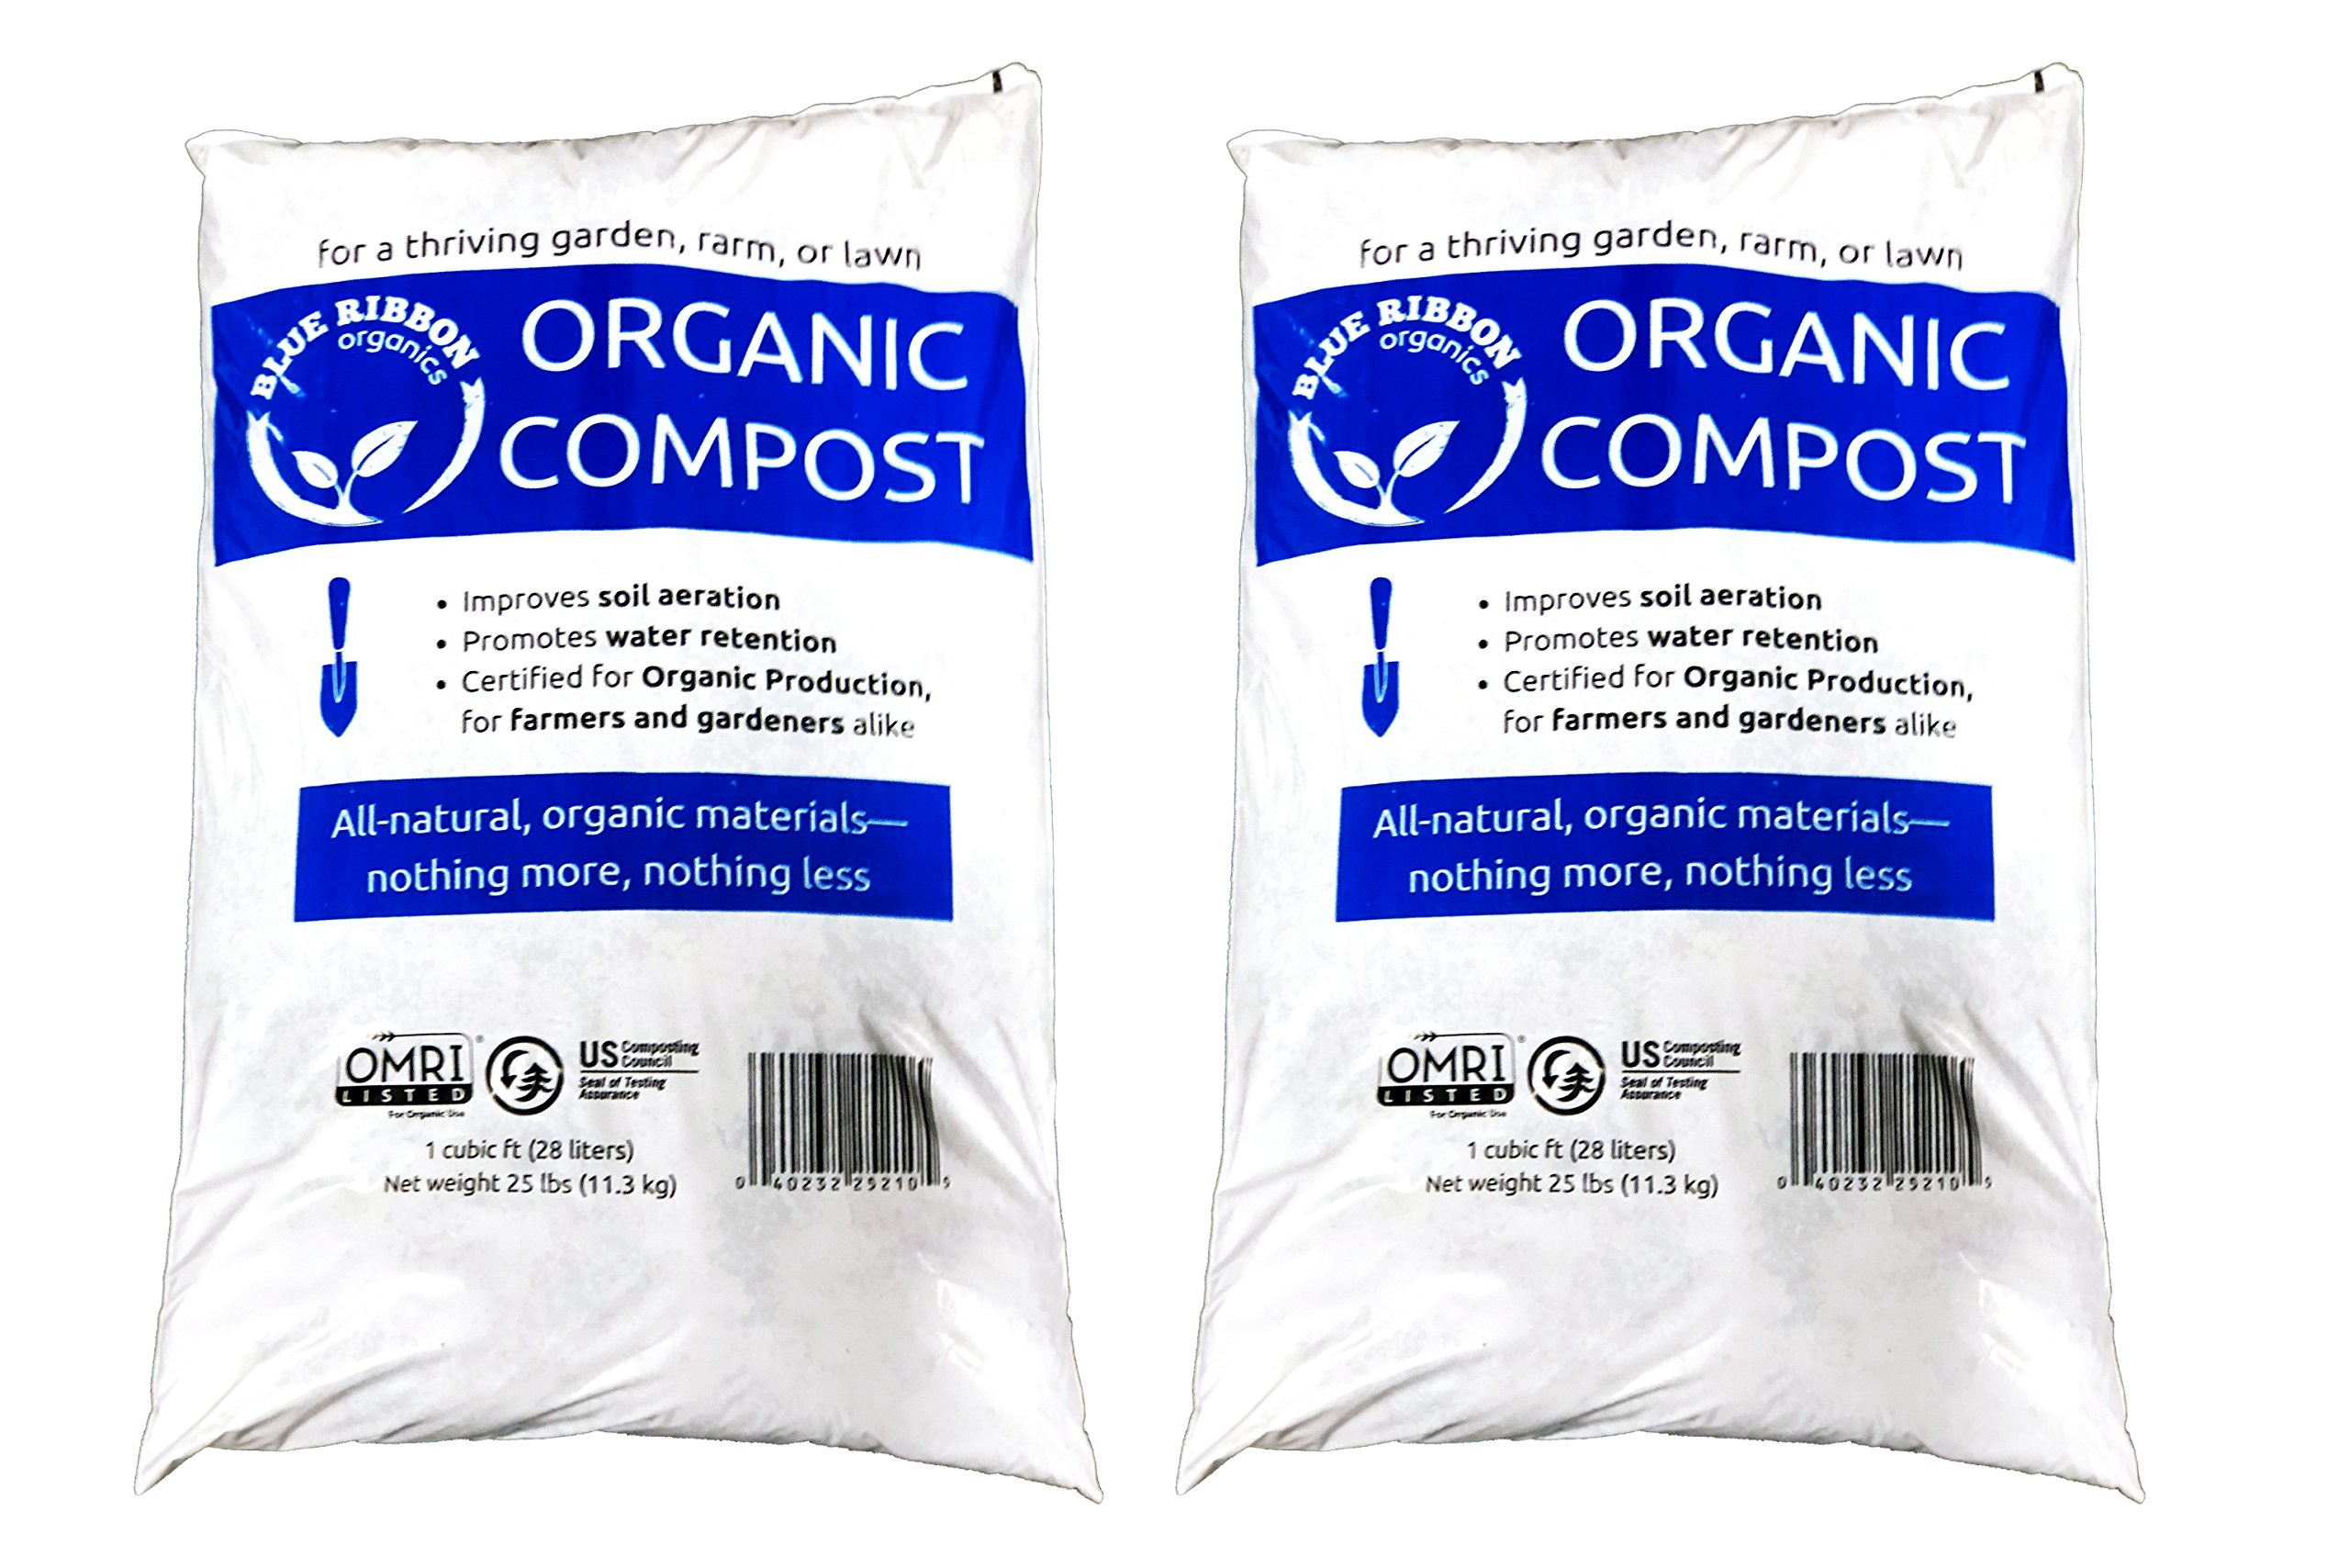 Blue Ribbon Organics OMRI Certified Organic Compost (2) by Blue Ribbon Organics